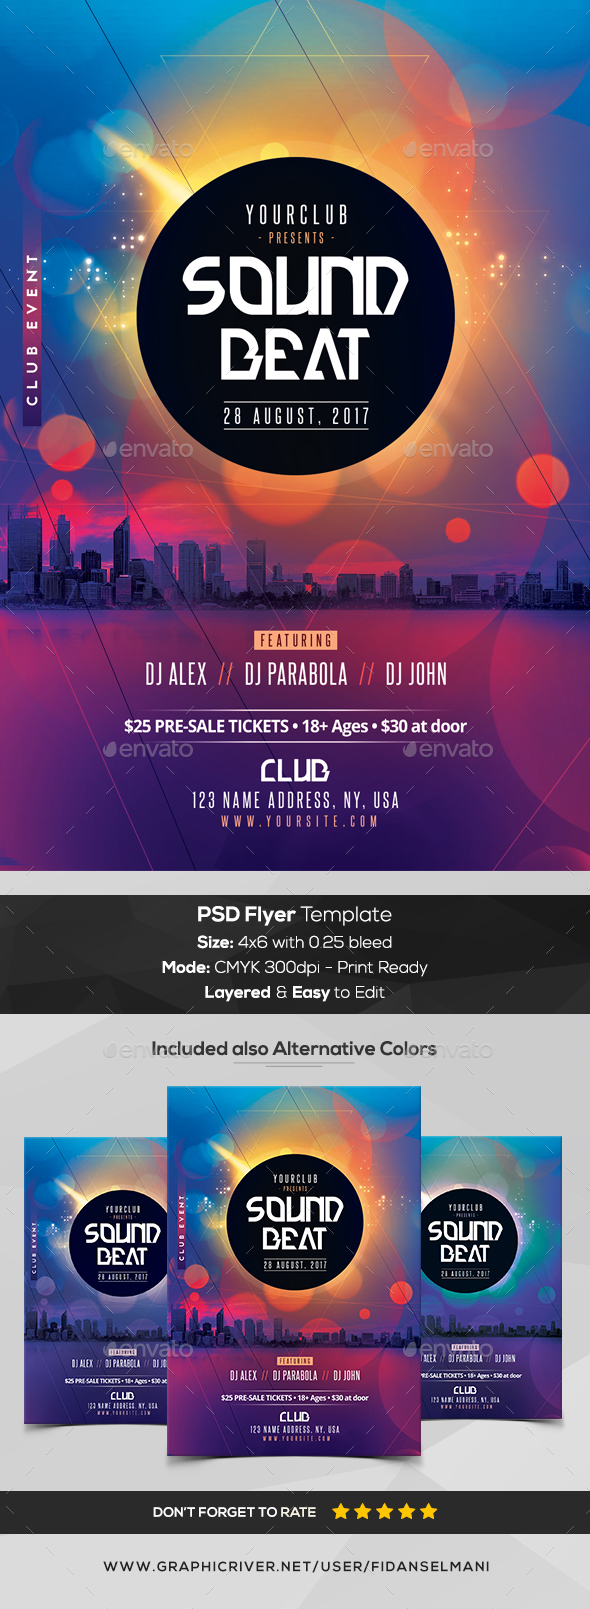 Sound Beat - PSD Flyer Template - Flyers Print Templates